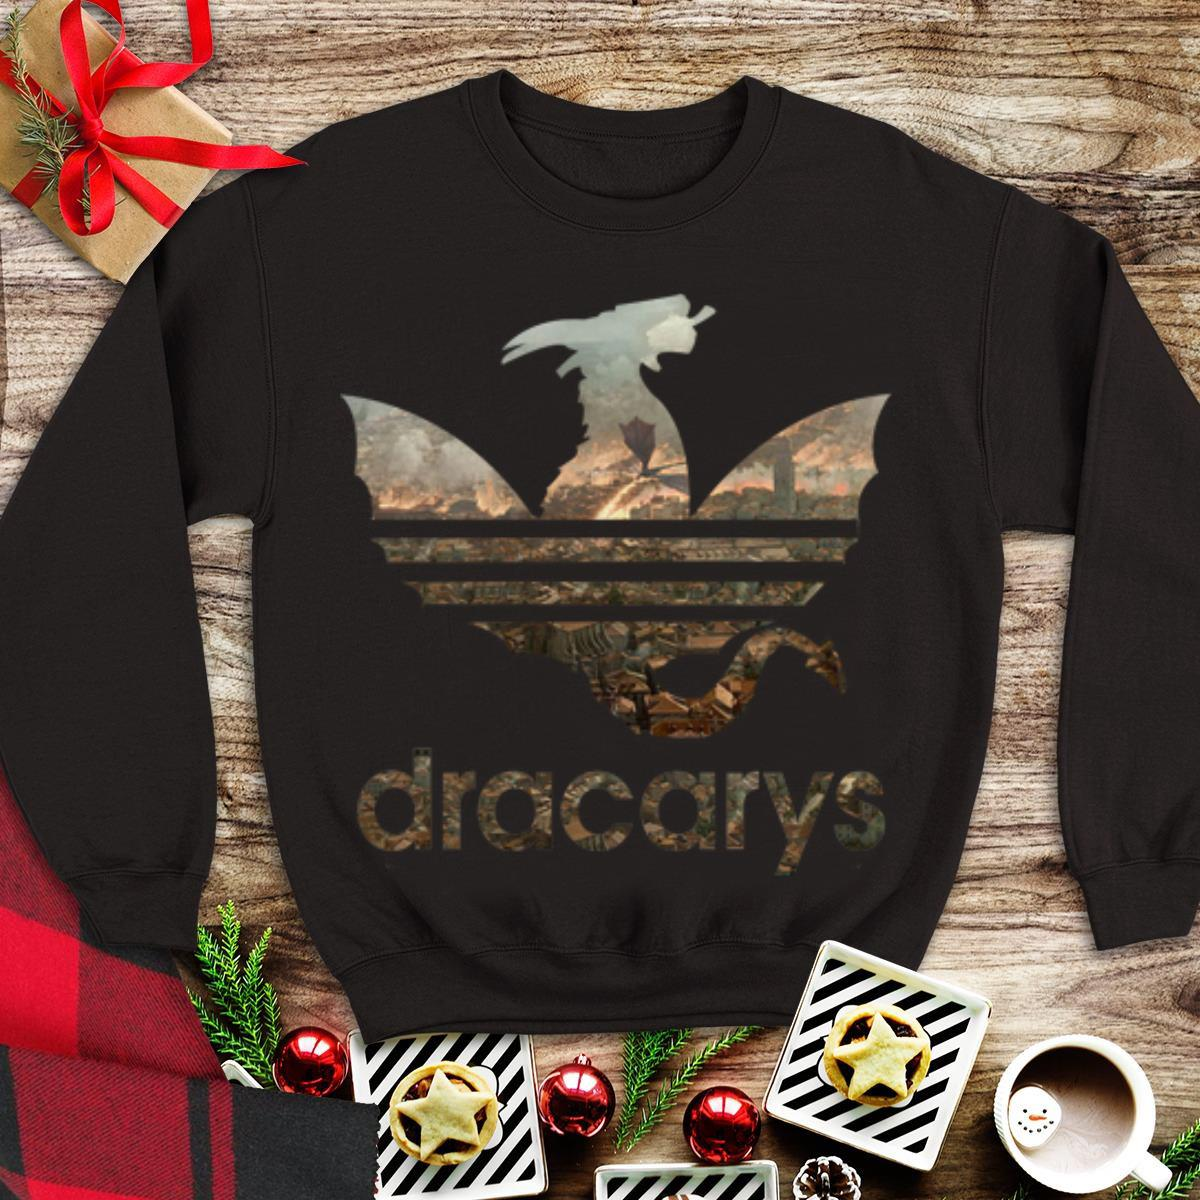 Awesome Adidas Dracarys Winterfell Game Of Thrones shirt